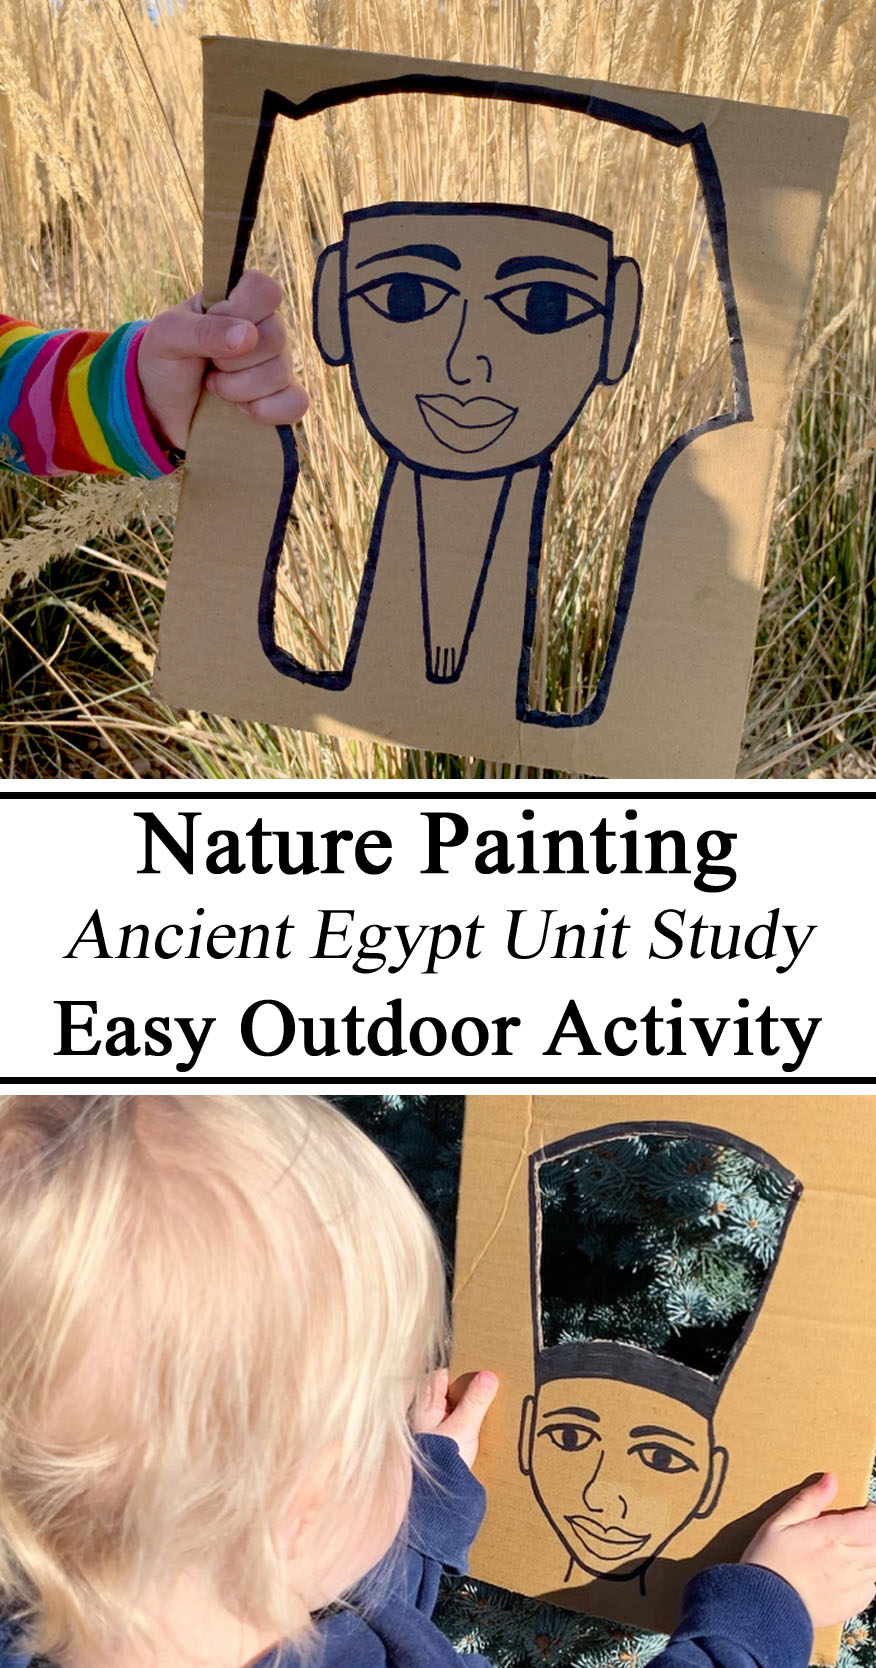 Nature Painting, Ancient Egypt Unit Study Hands on Learning Cut Out King Tut Queen Nefertiti Upcycle Junk Modeling Fall Colors Nature School Study Unit Studies Hands On Learning Homeschool Homeschooling PreK Kindergarten Preschool Unschooling #travelingthroughlearning